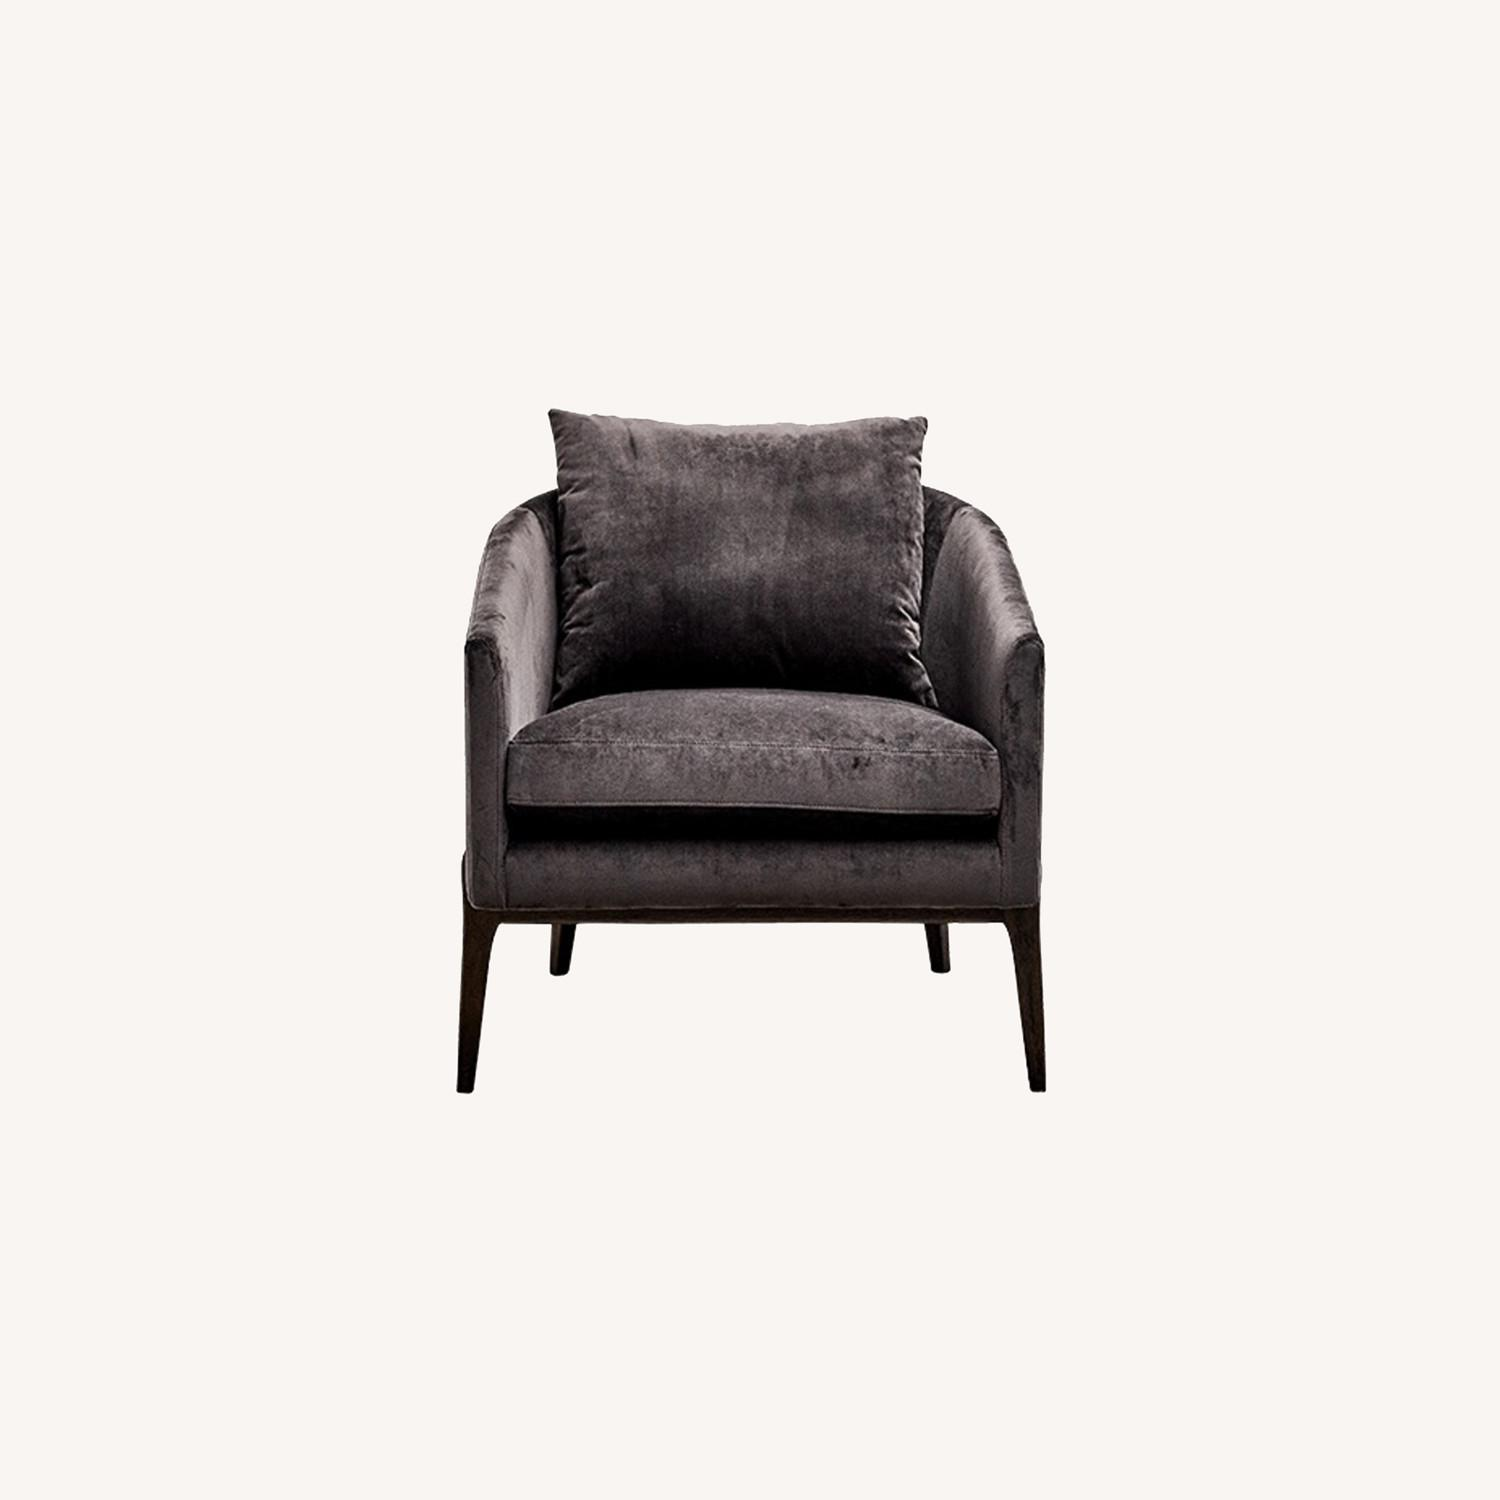 Four Hands Mossie Lounge Chair - image-0